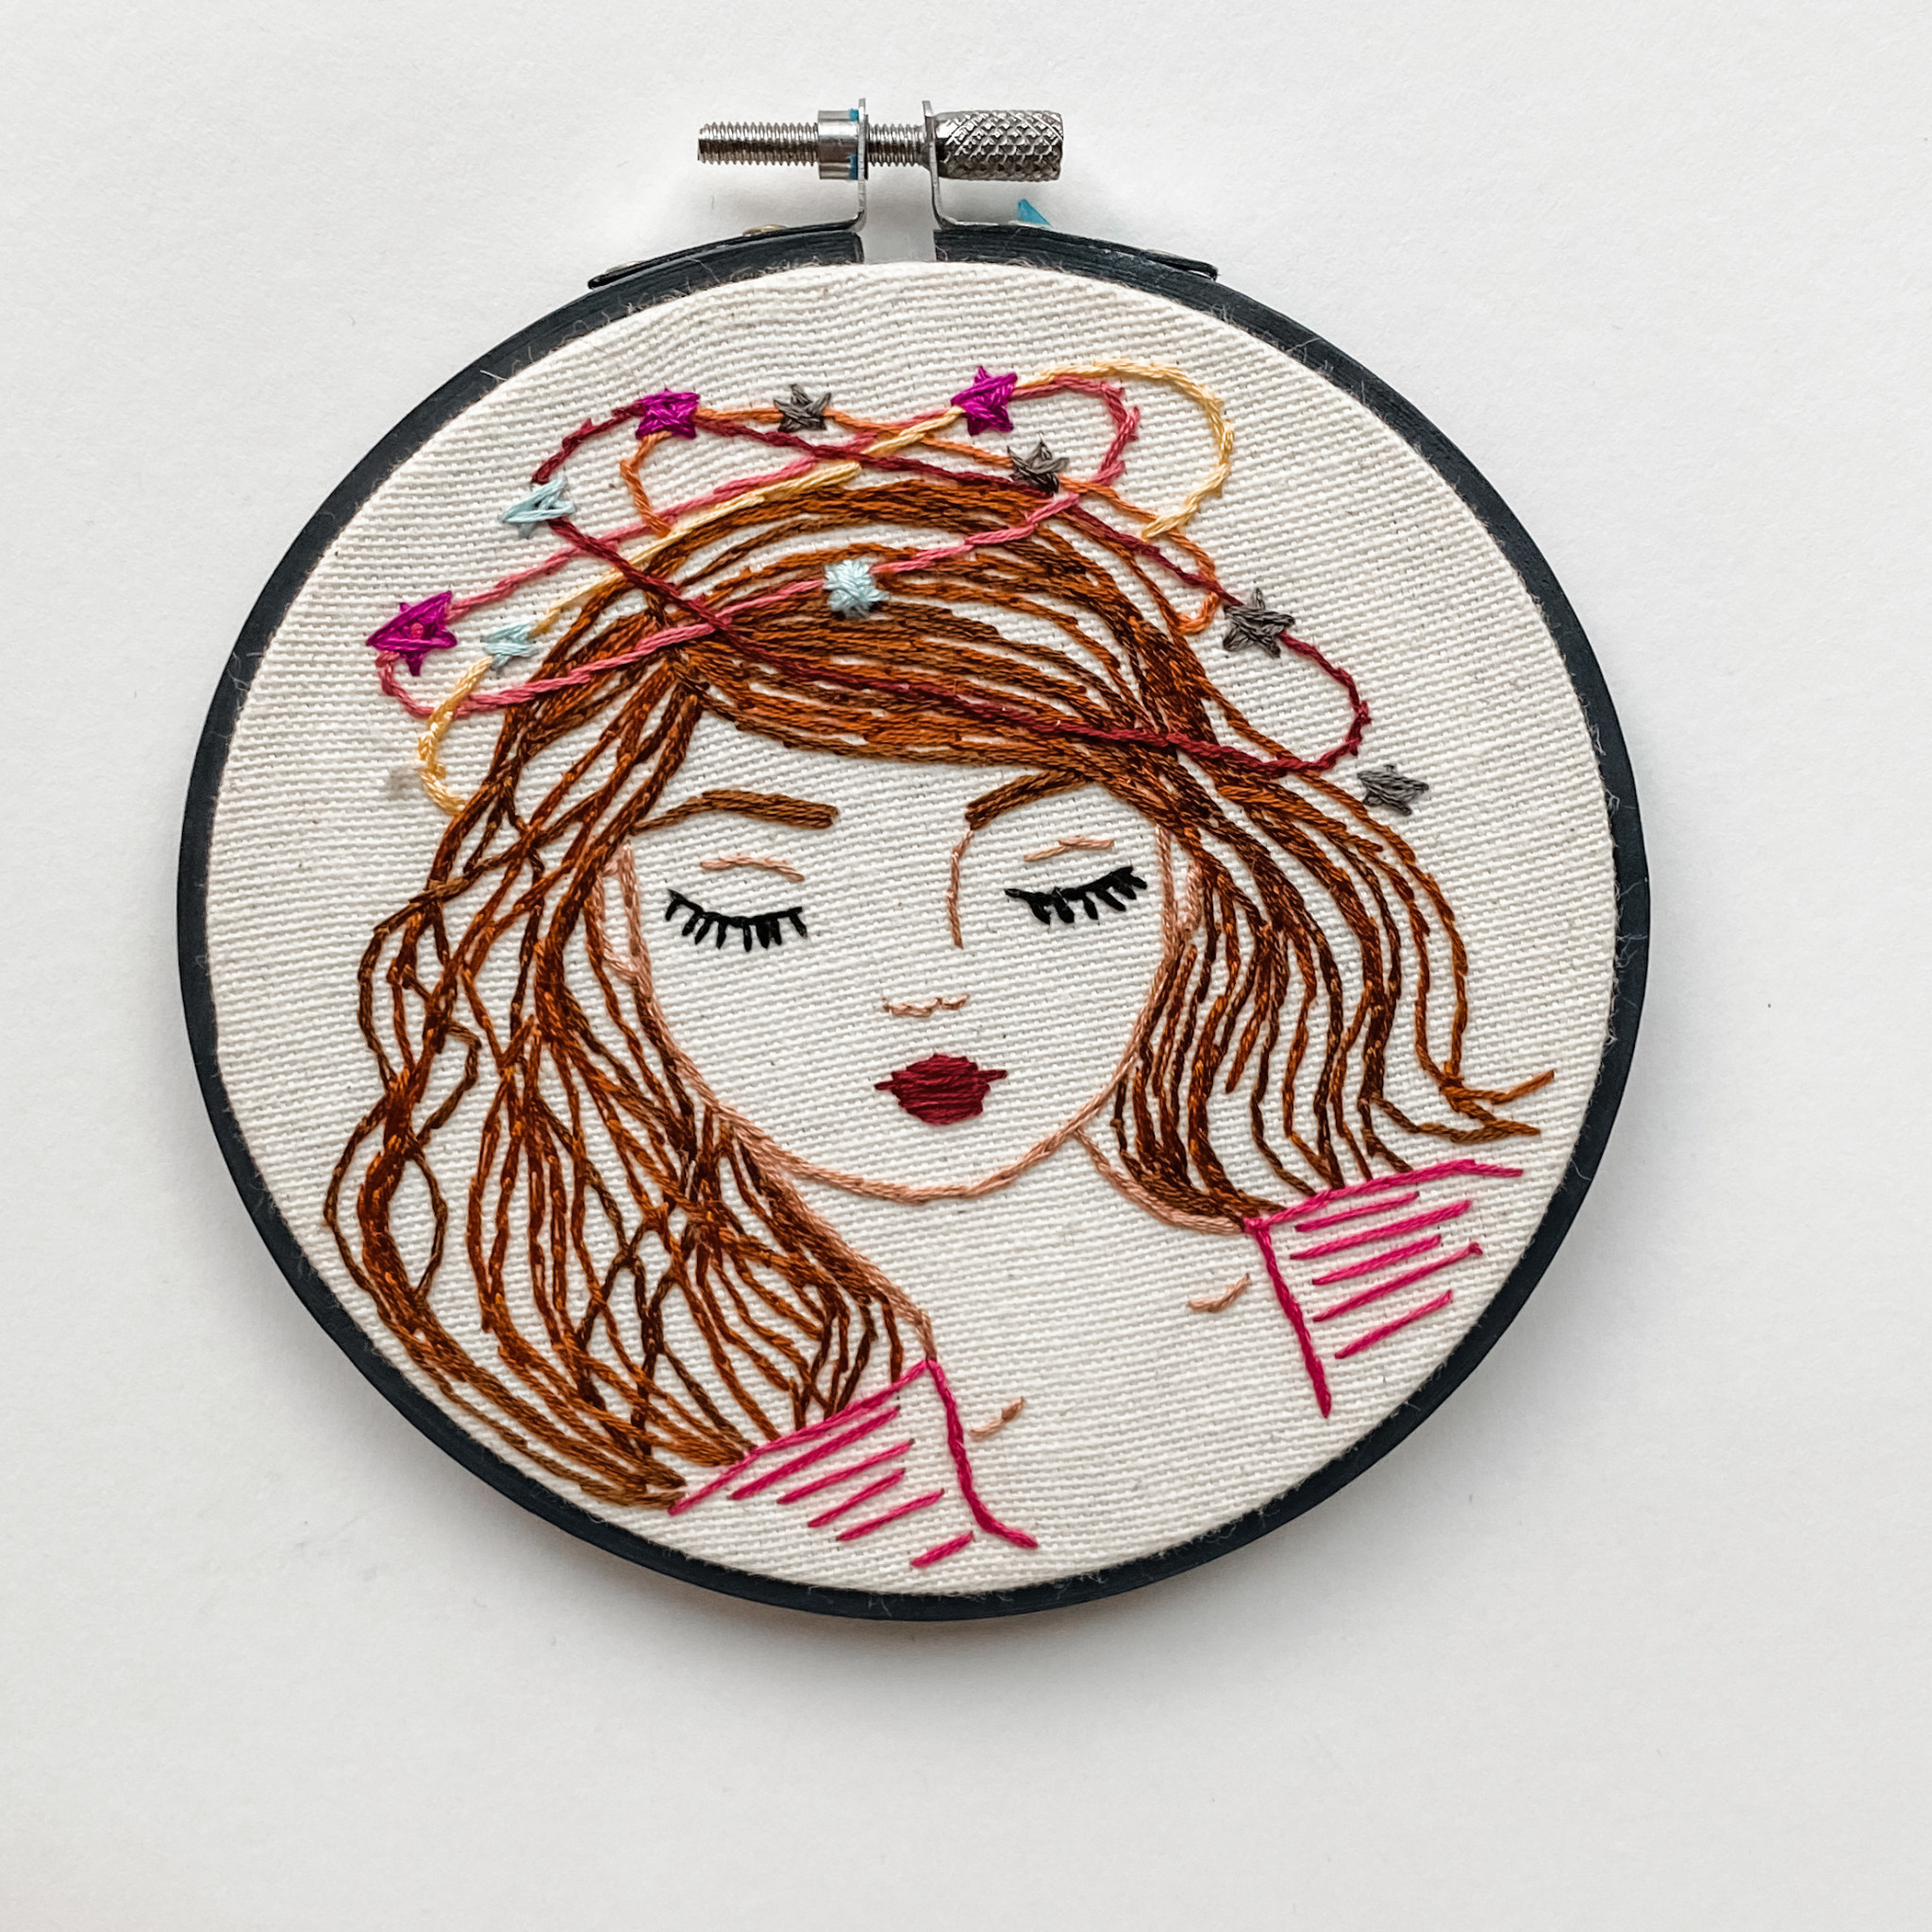 "Embroidered Hoop 5"" - Day Dreamer"